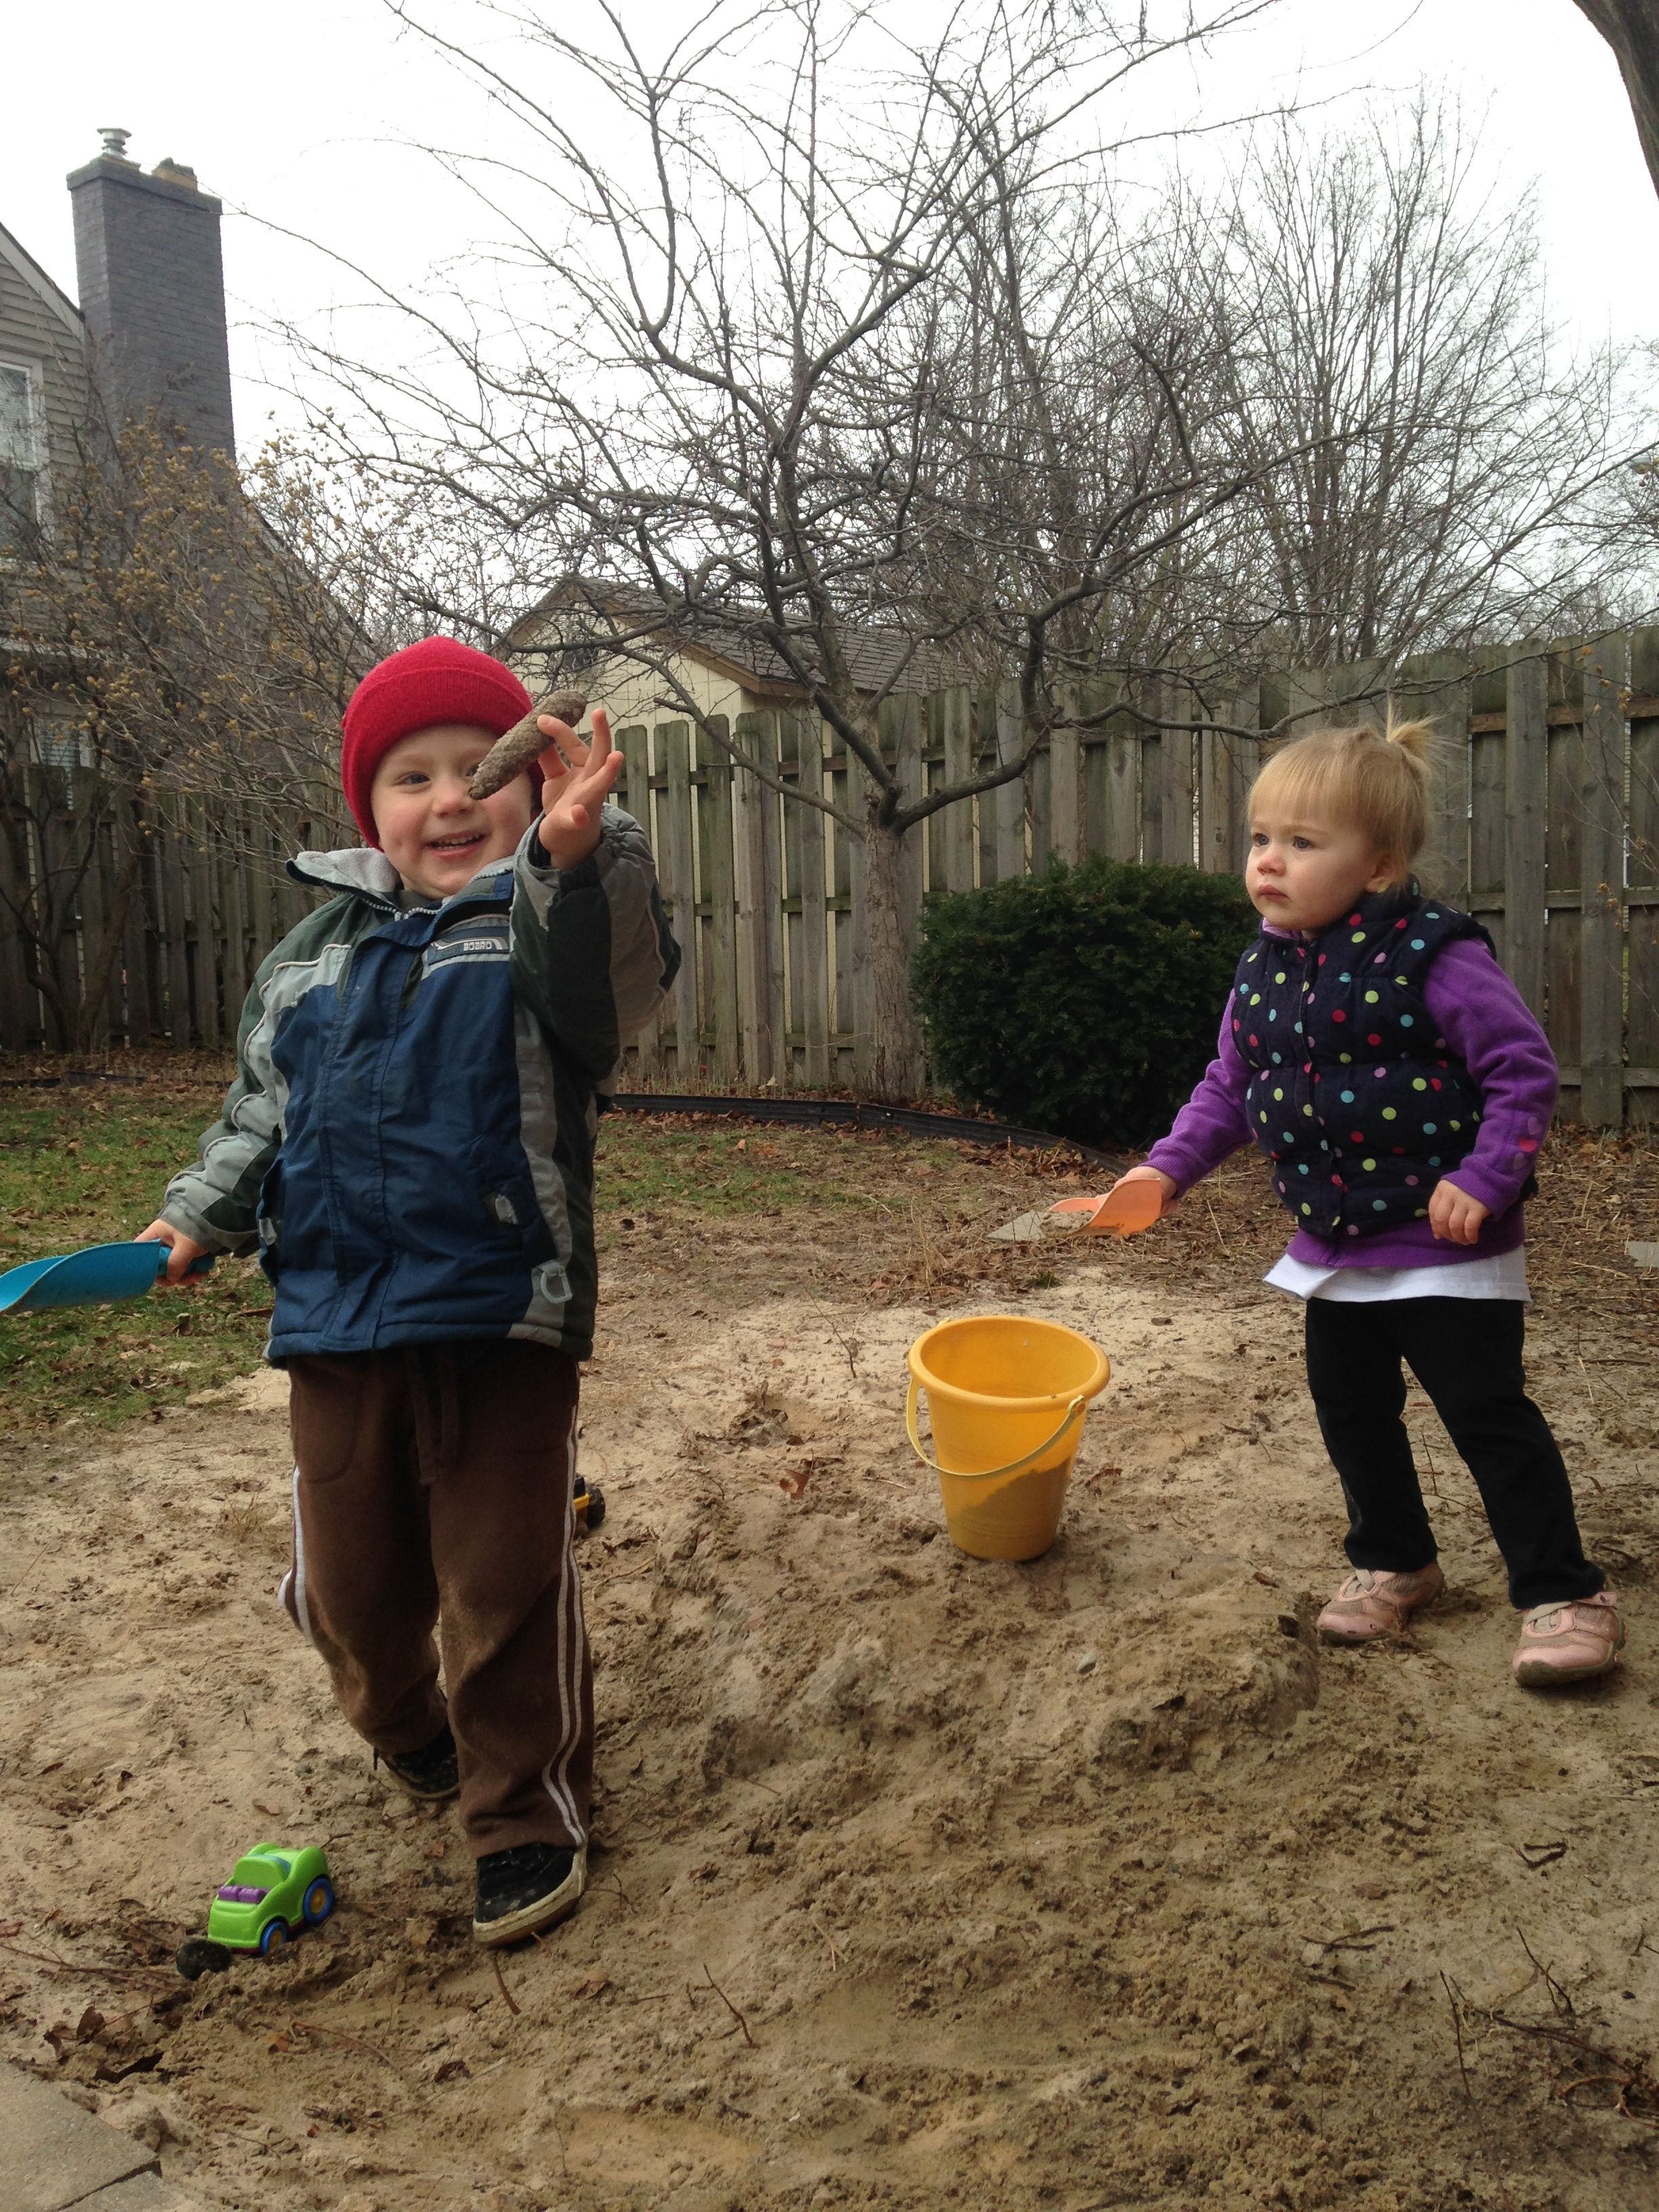 7 Even in December no snow means we can play in the sand